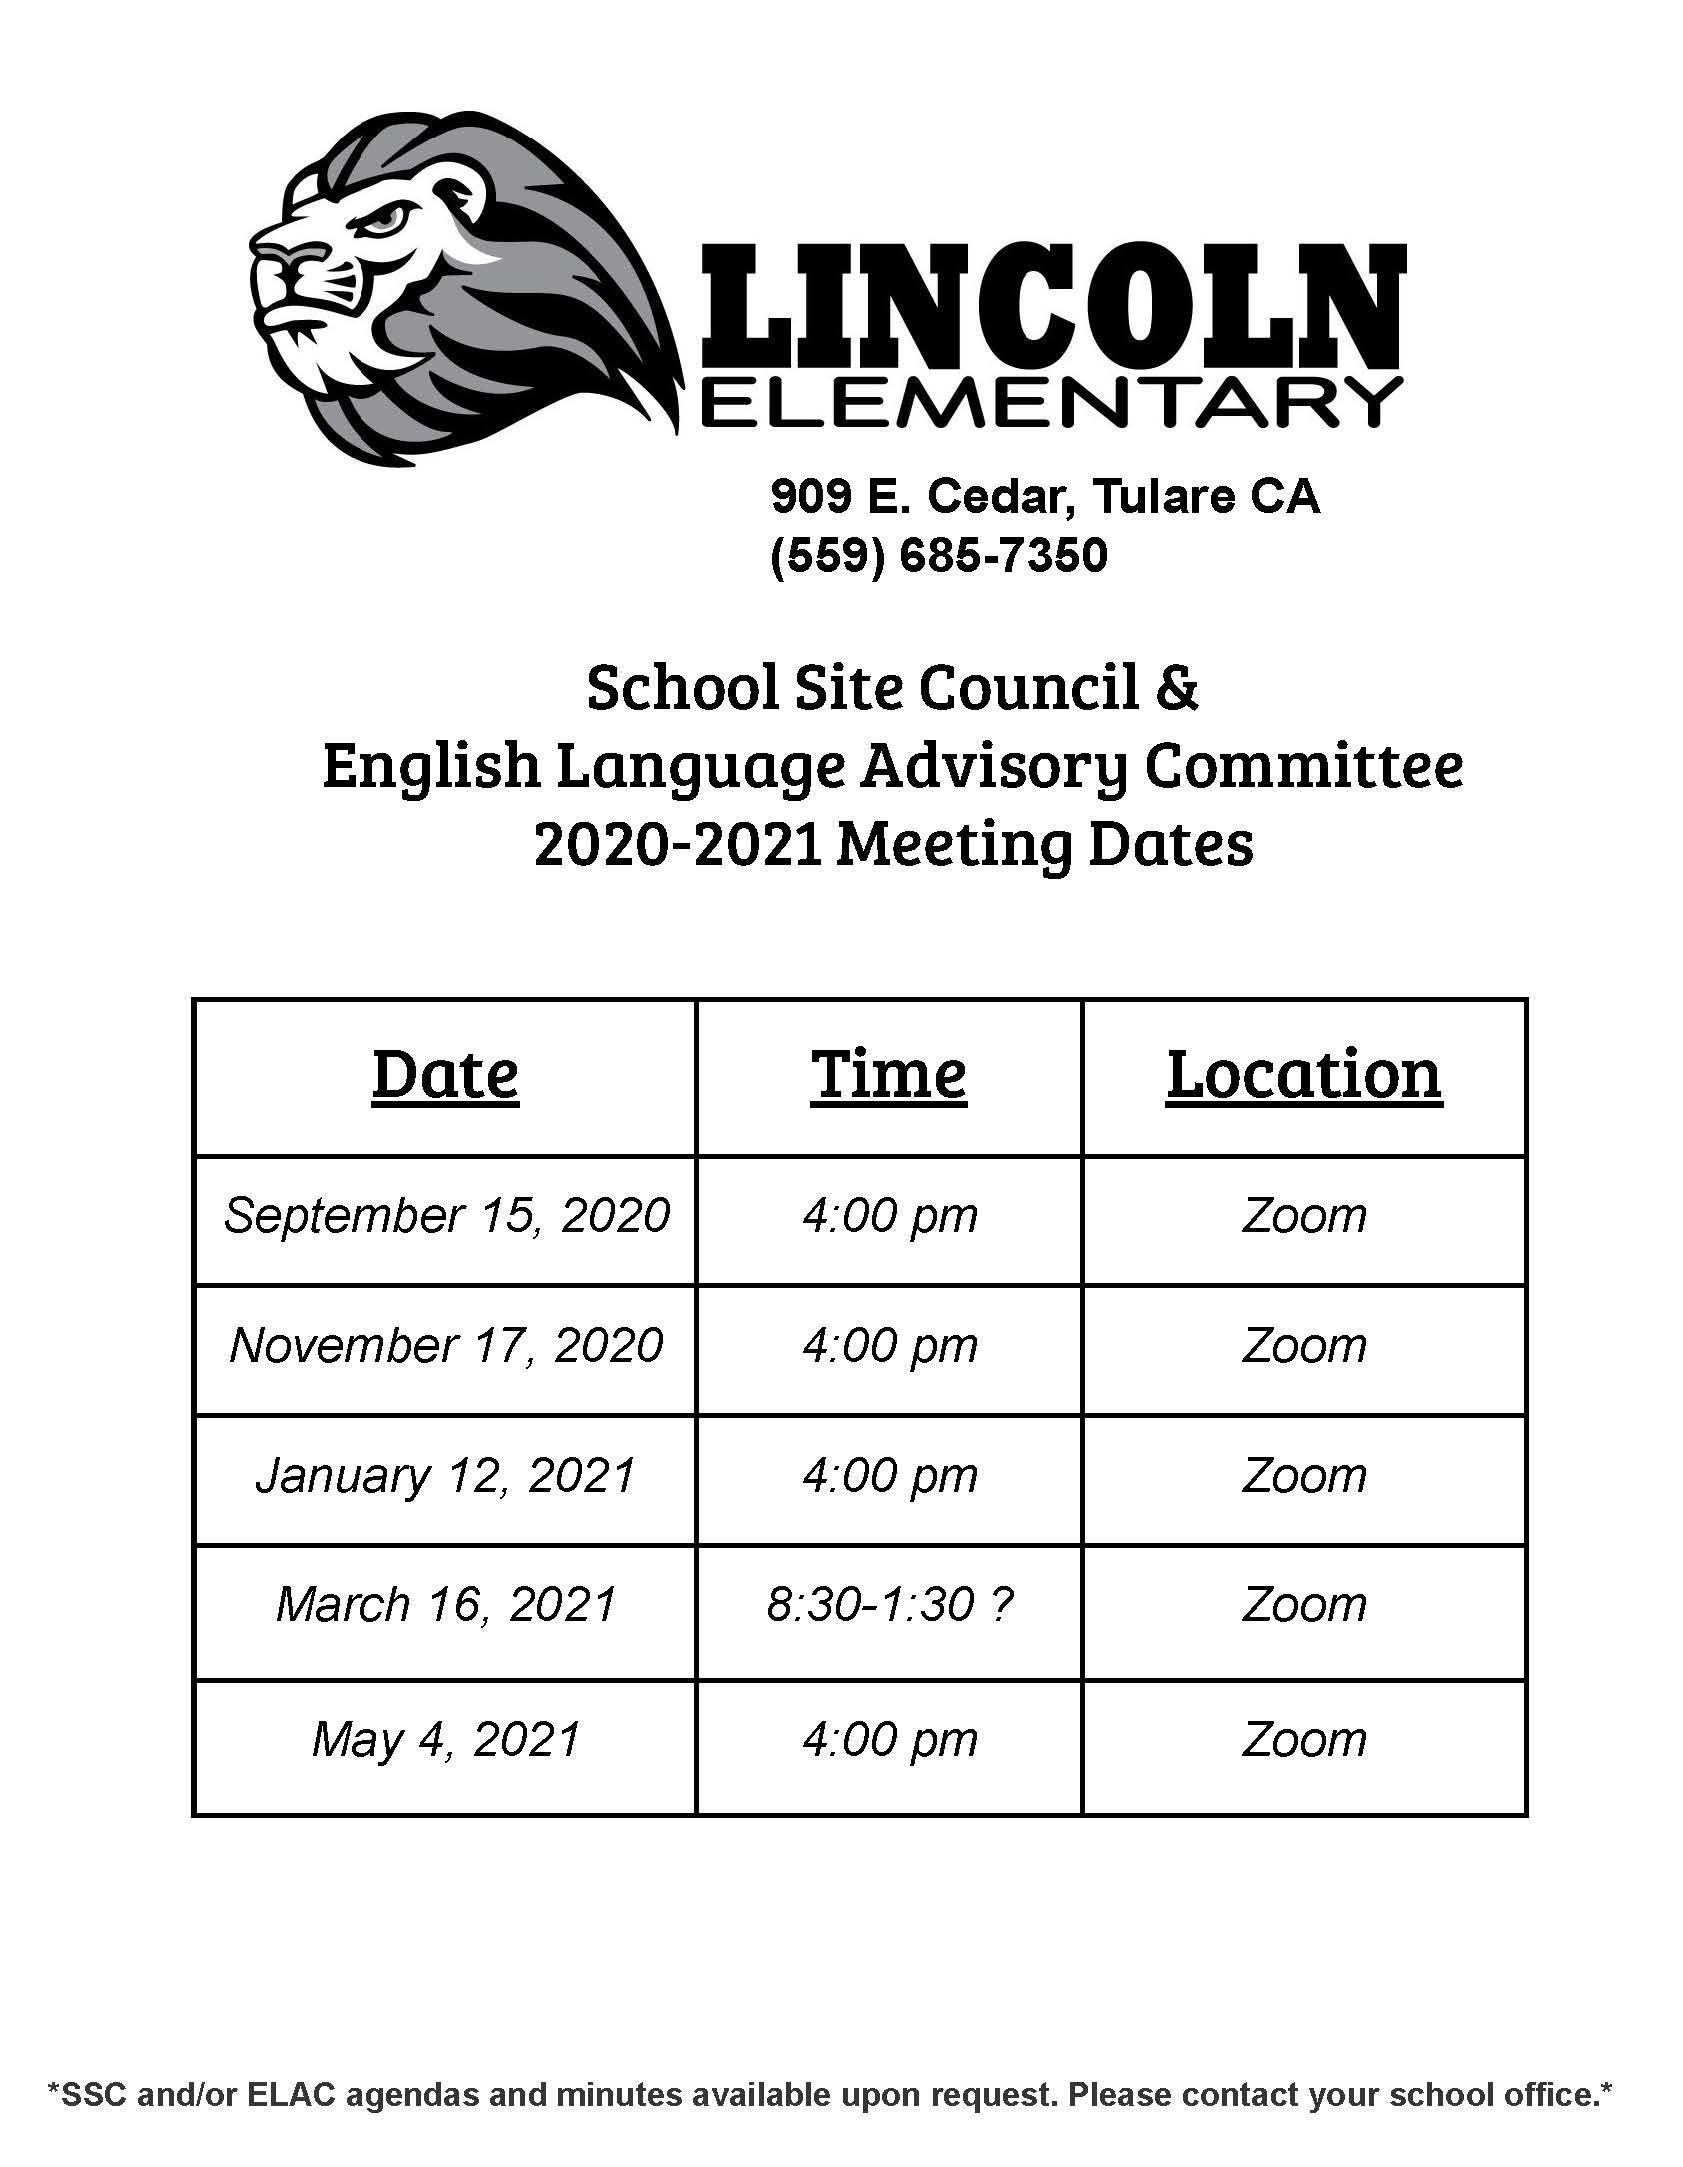 SSC/ELAC meeting dates/times 20/21